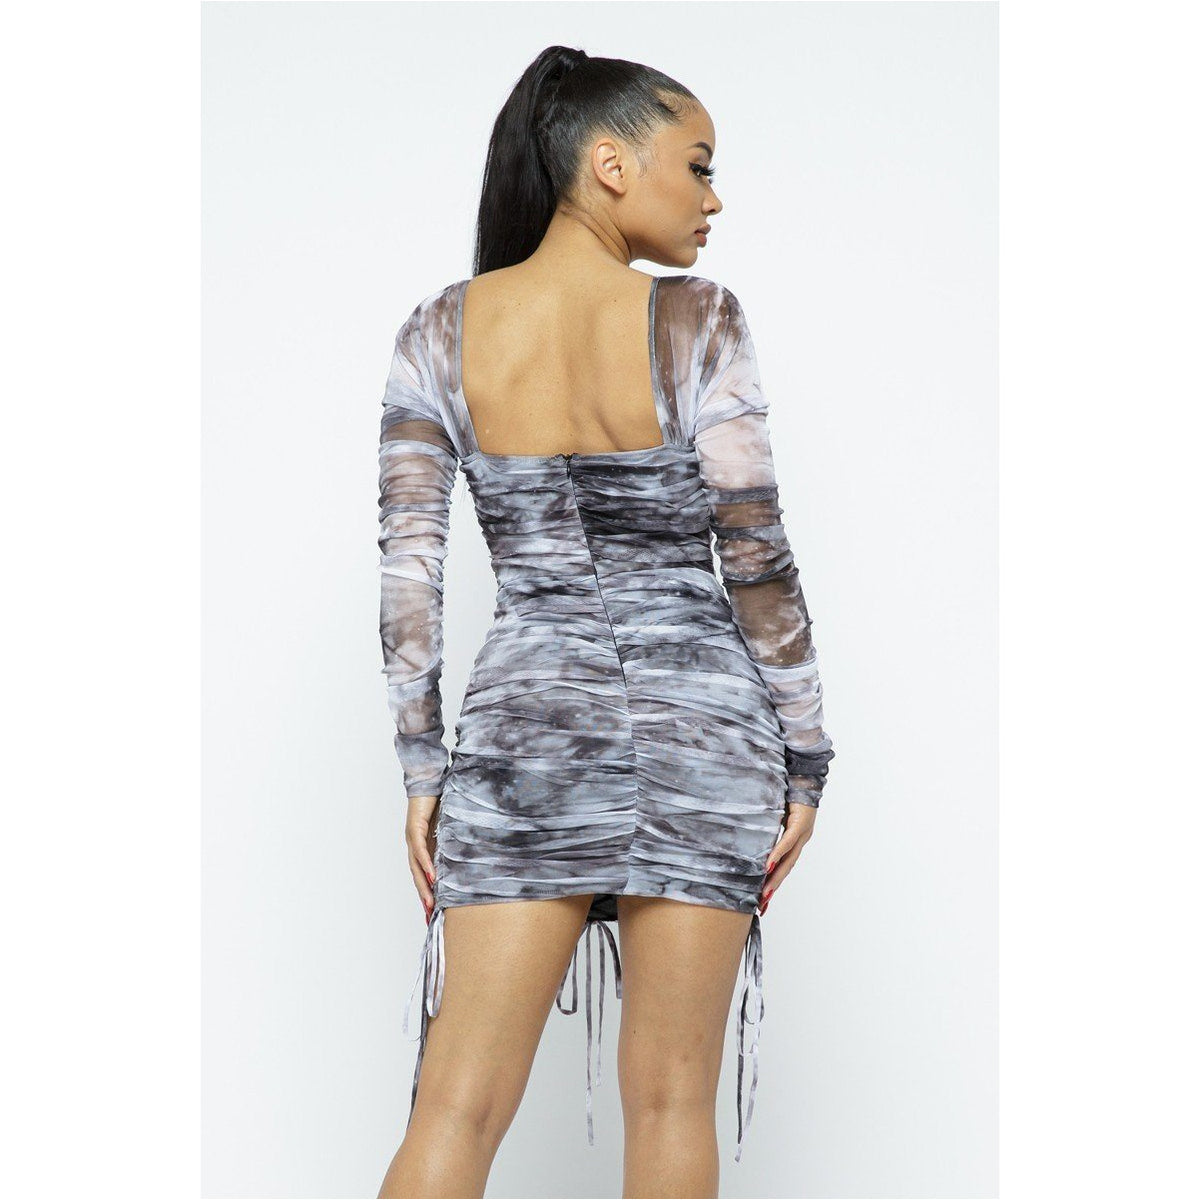 Lace Up Tie Dye Mesh Mini Dress